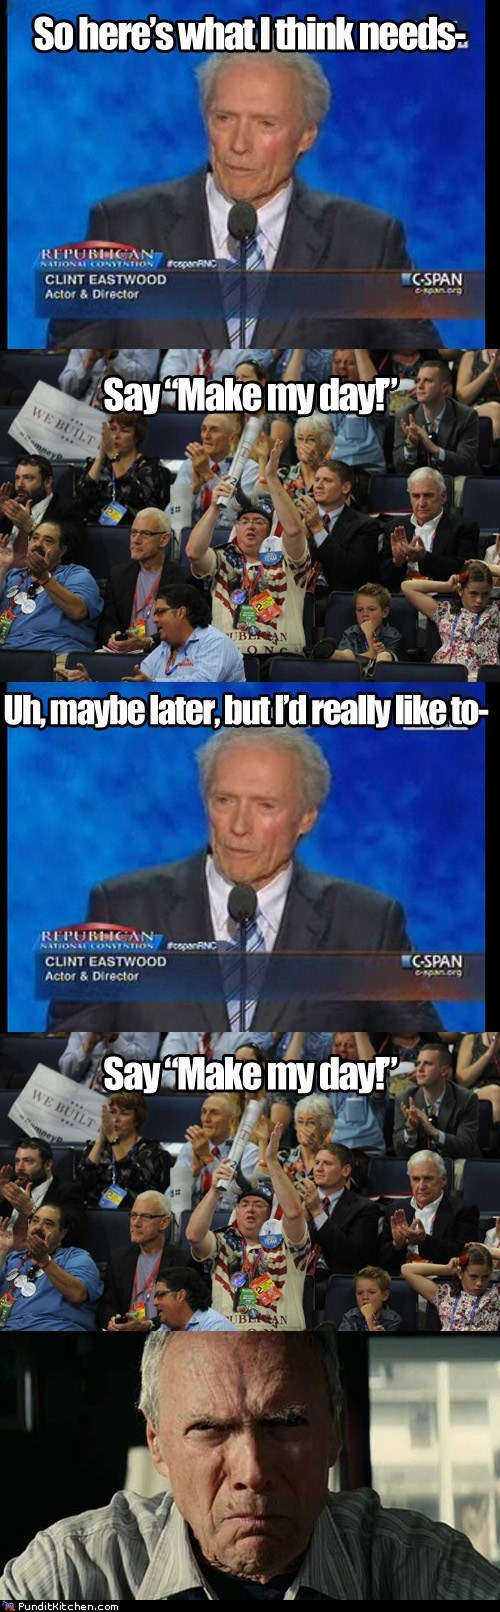 Clint Eastwood dirty harry interrupt make my day rnc - 6553174016